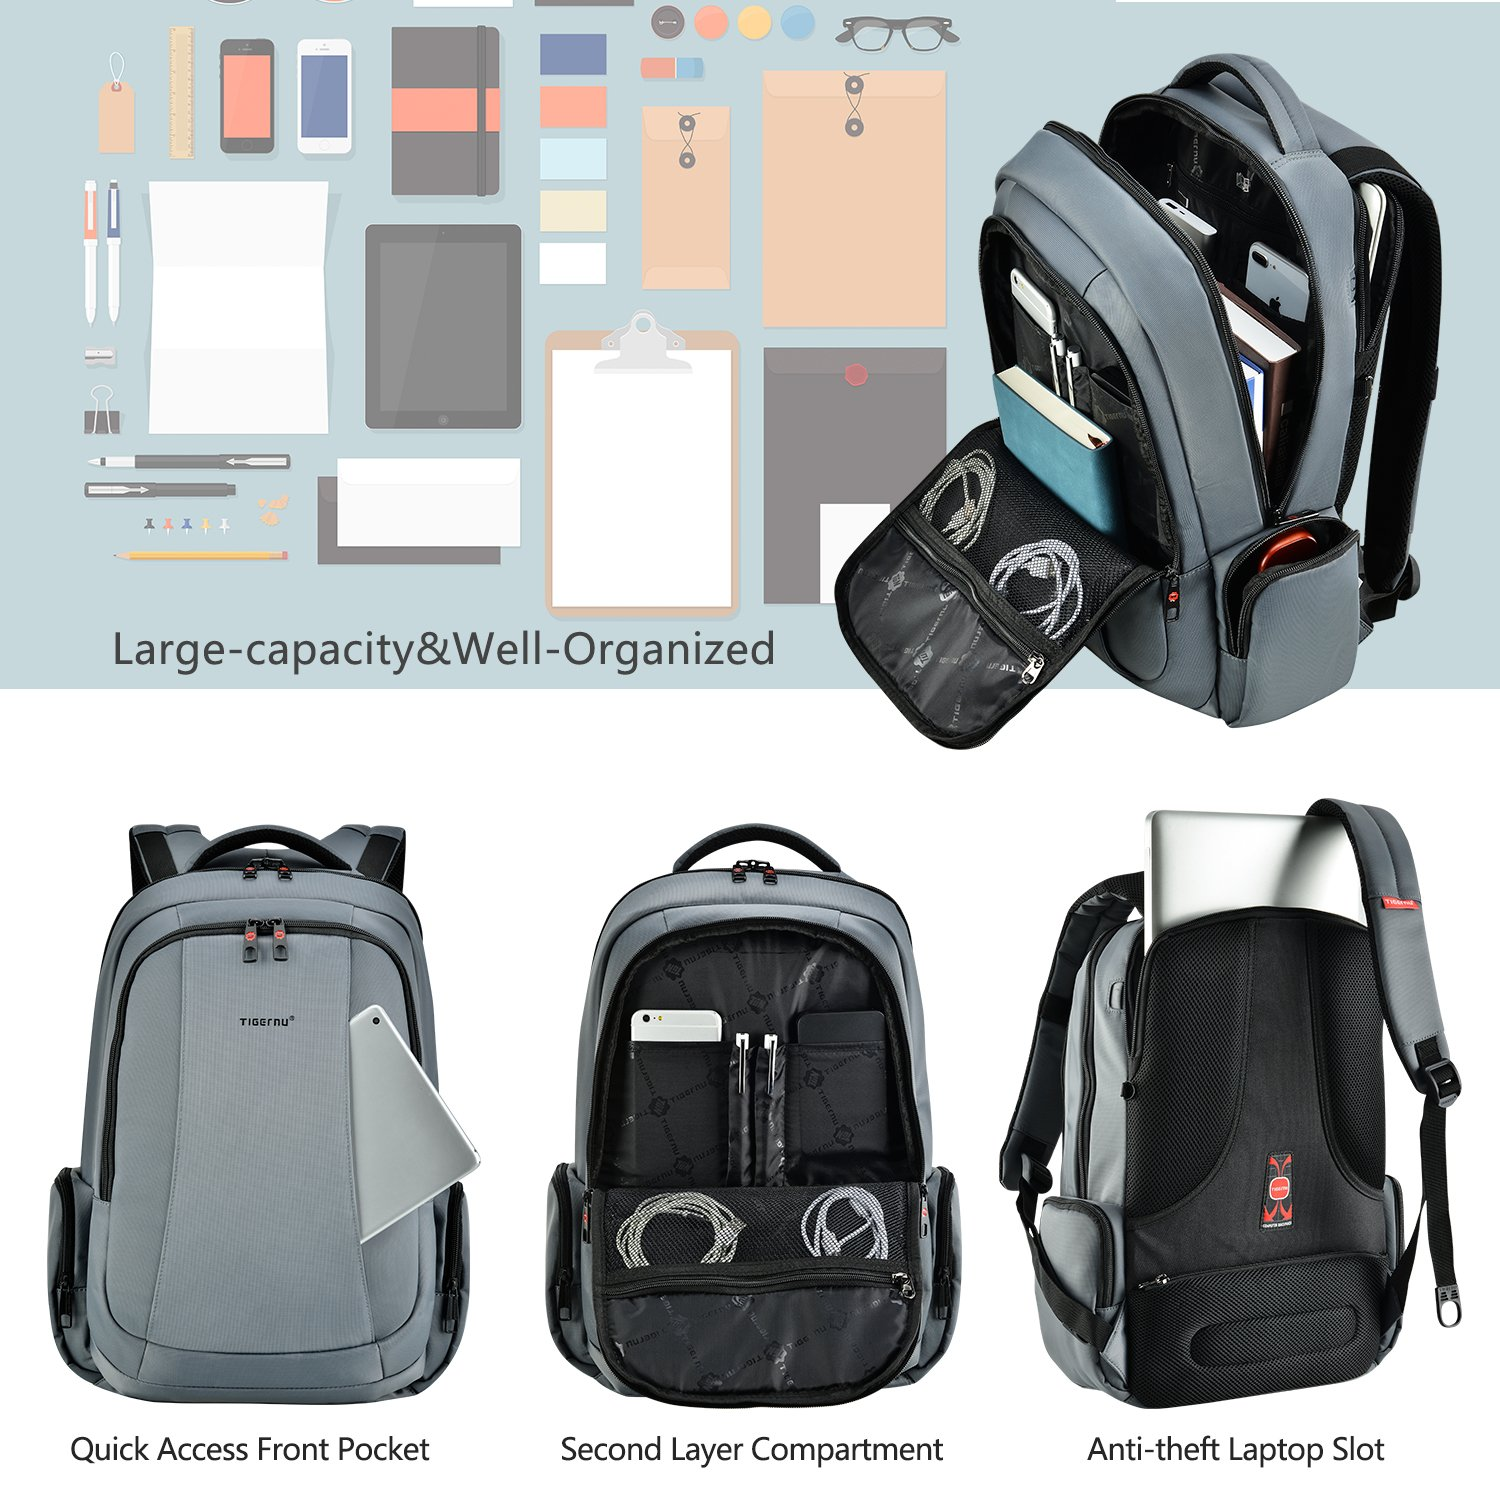 0a78a2f4818a Amazon.com  Tigernu Business Laptop Backpack Slim Anti Theft Travel  Computer Backpacks Environmentally Water-Resistant Laptops Bag for  Men Women 15.6 Inch ...